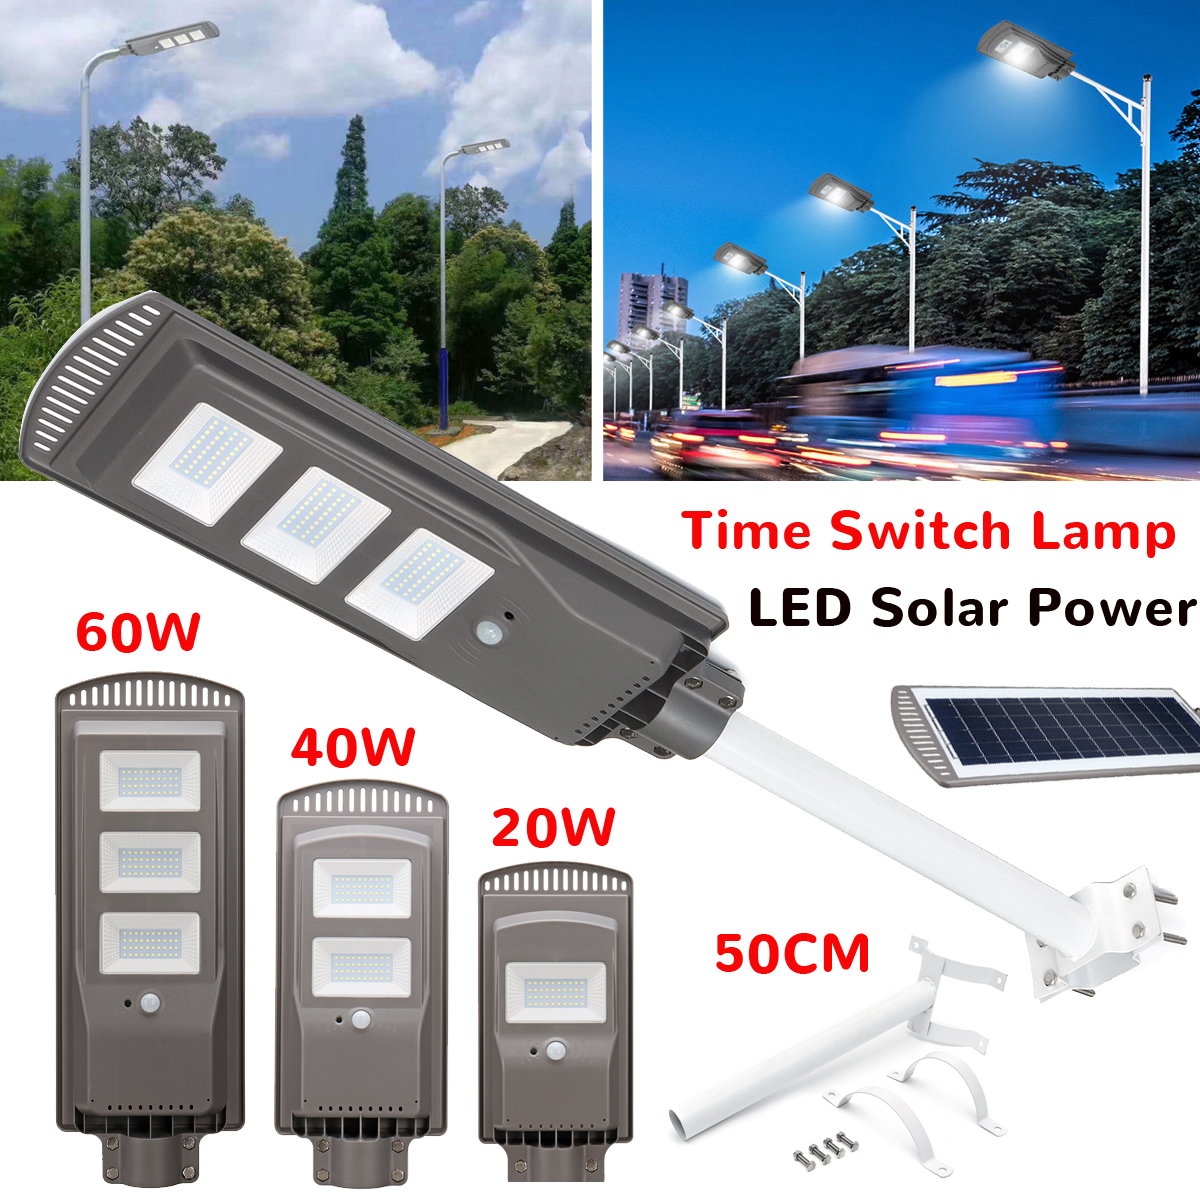 Smuxi Waterproof Led Solar Street Light Outdoor 20w 40w 60w Lampu Emergency 20 Watt 40 60 W Panel Surya Bertenaga Jalan All